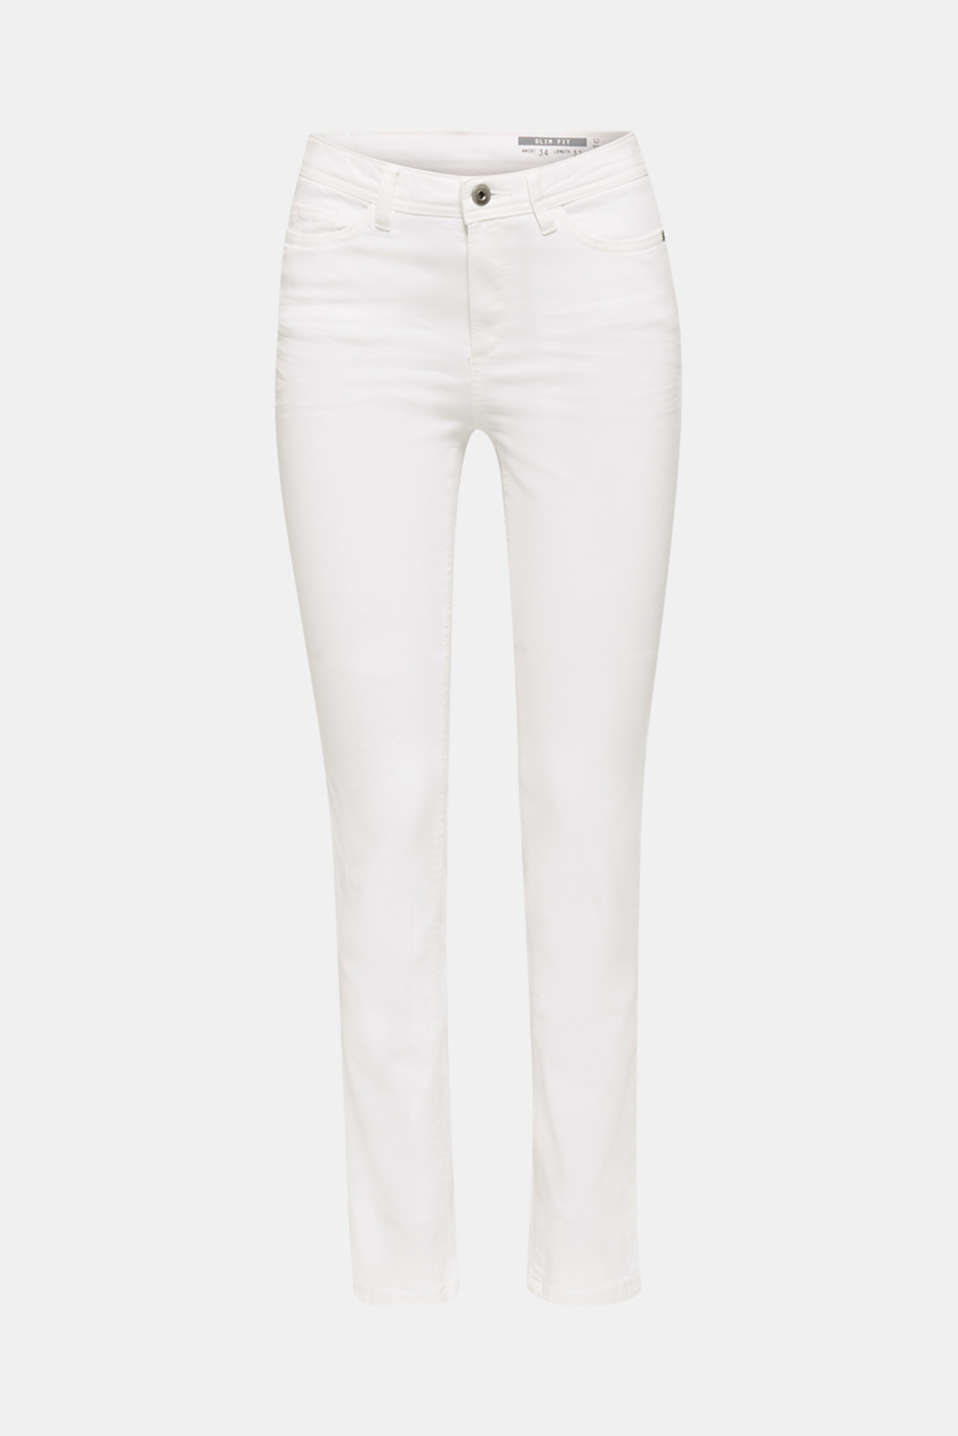 Washed-effect stretch trousers, WHITE, detail image number 7